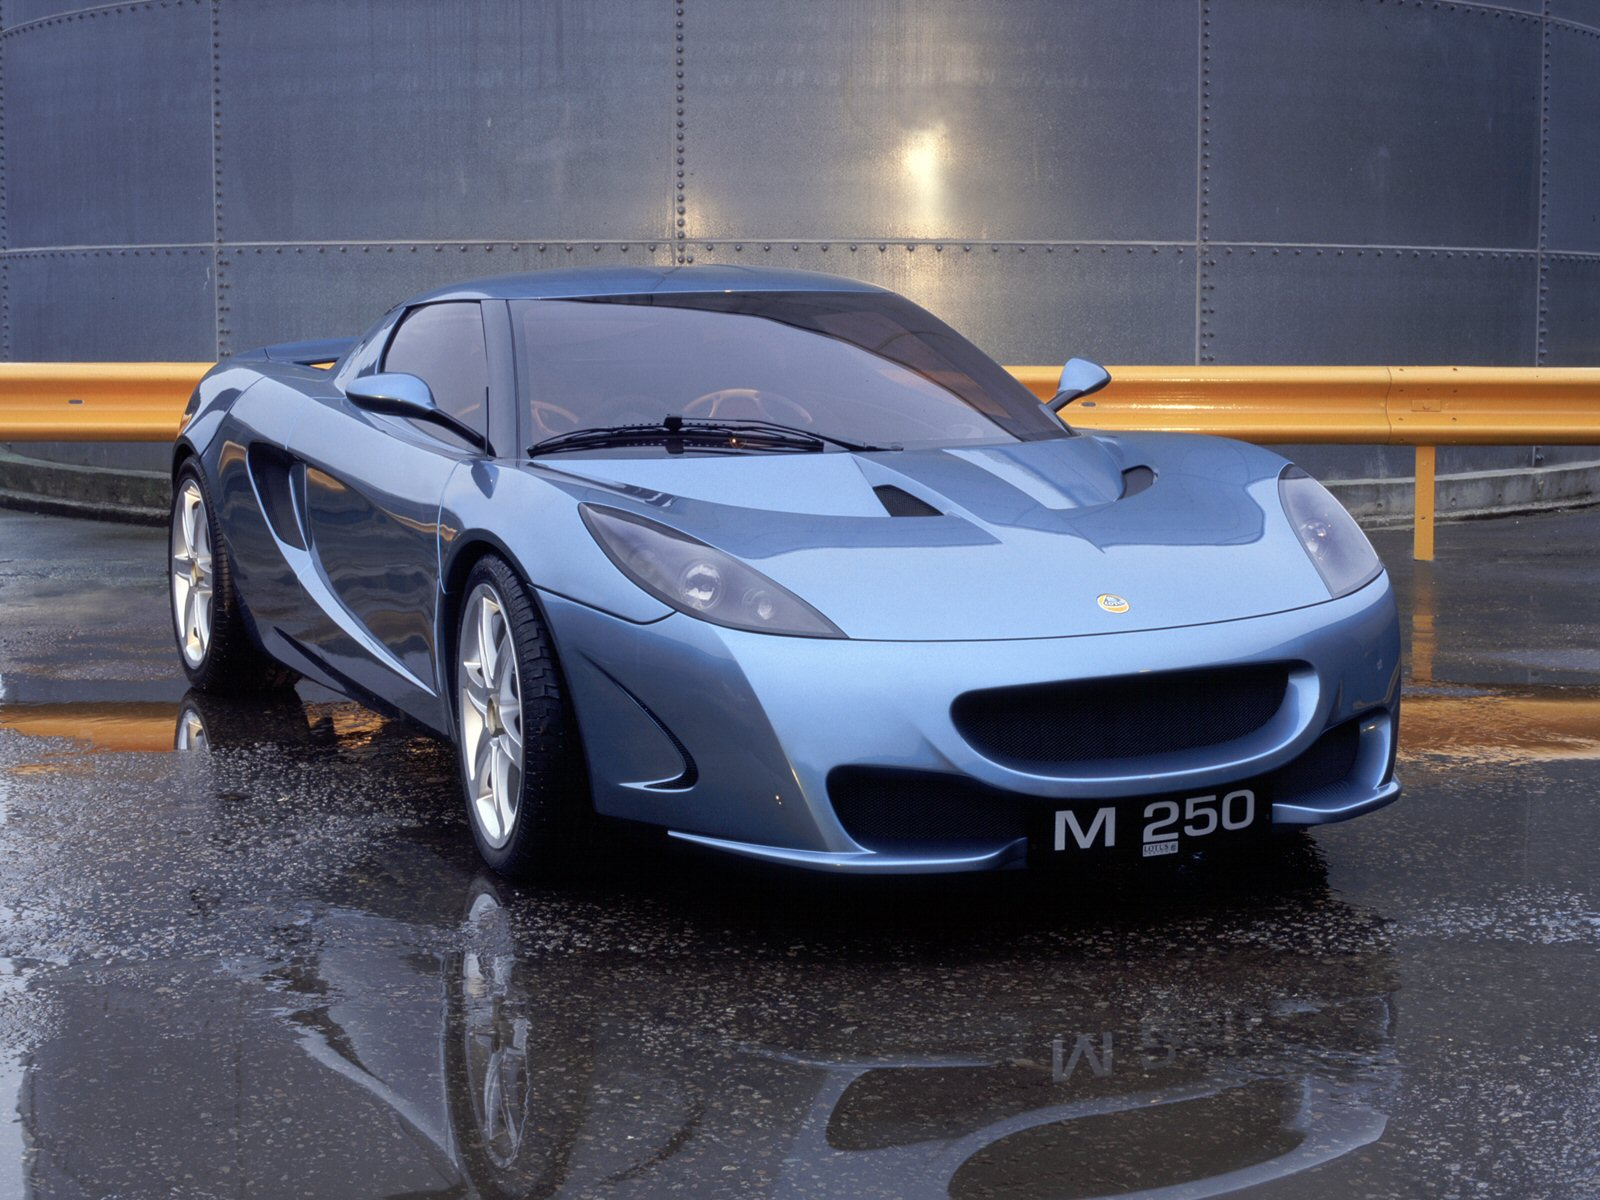 lotus m250 Photo Free Picture Download Image Of